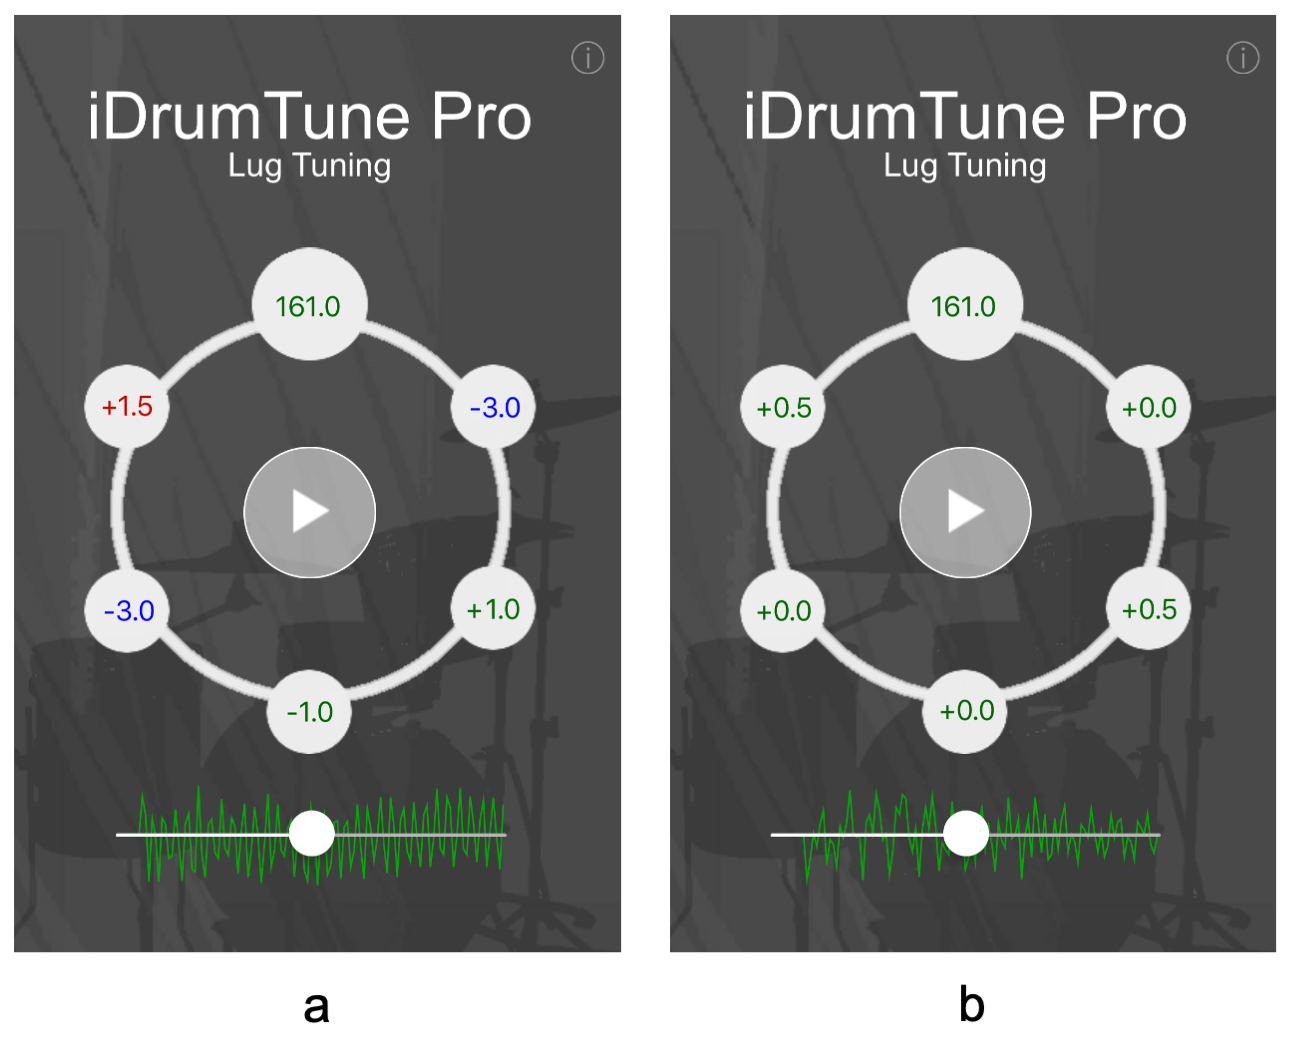 Figure 4.6. The iDrumTune Lug Tuning feature showing the software read-out for an uneven tuned drumhead (a) and an even tuned drumhead (b)